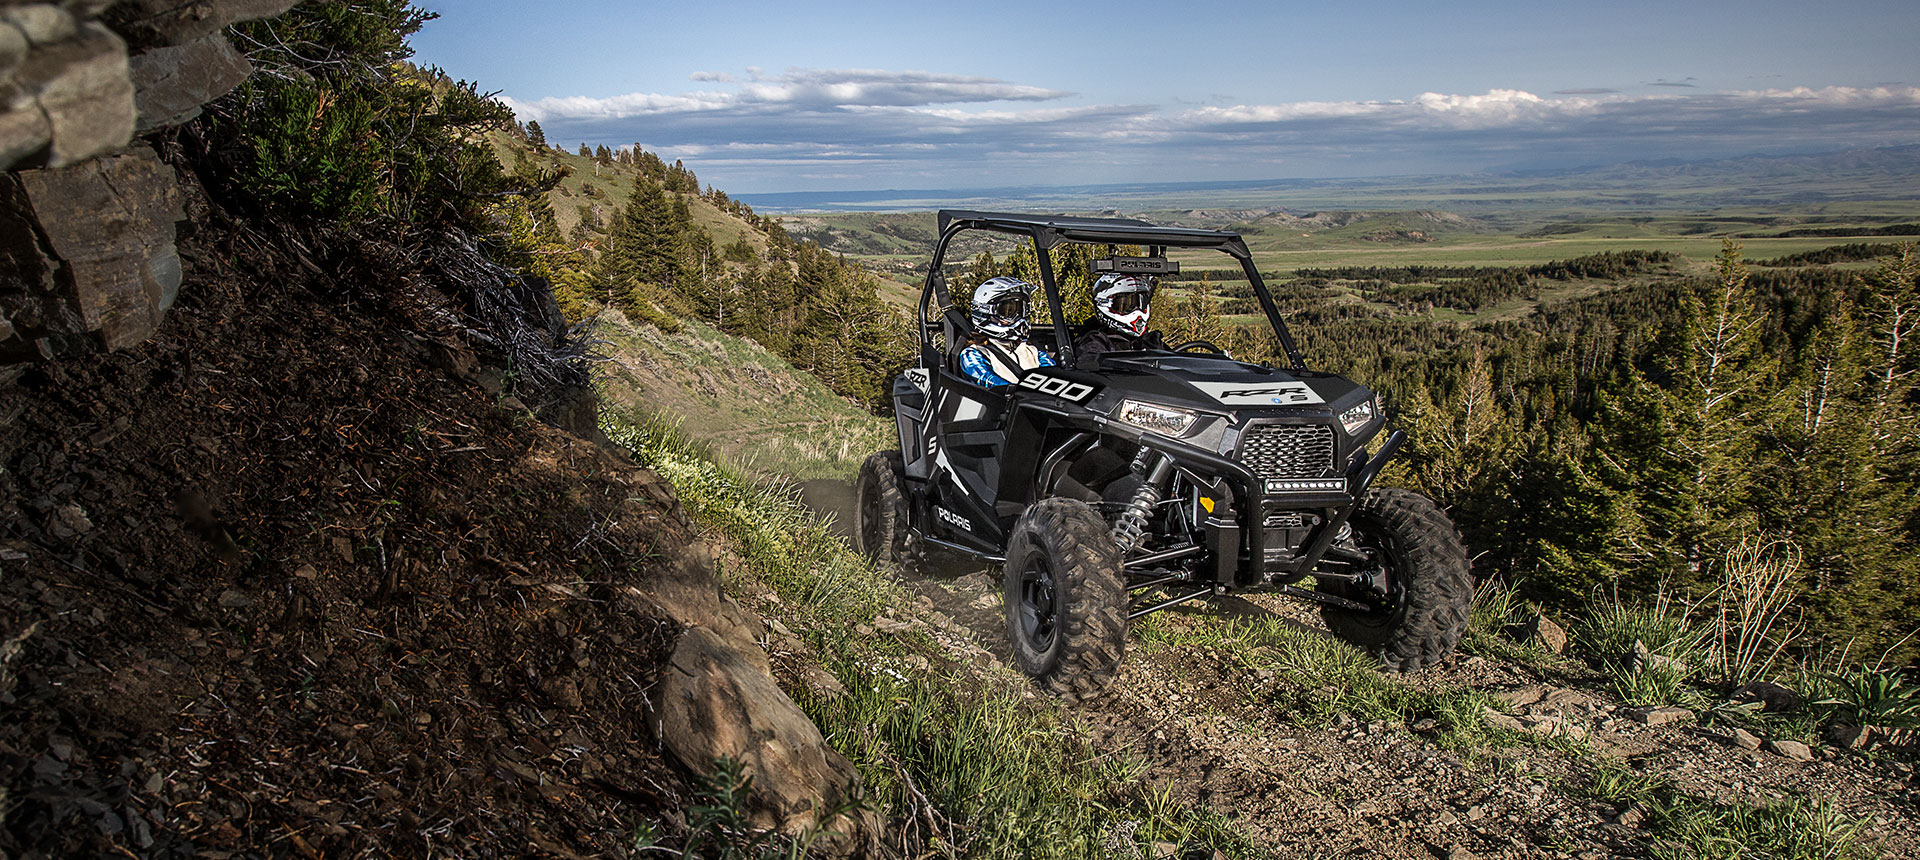 2019 Polaris RZR S 900 in Berne, Indiana - Photo 4